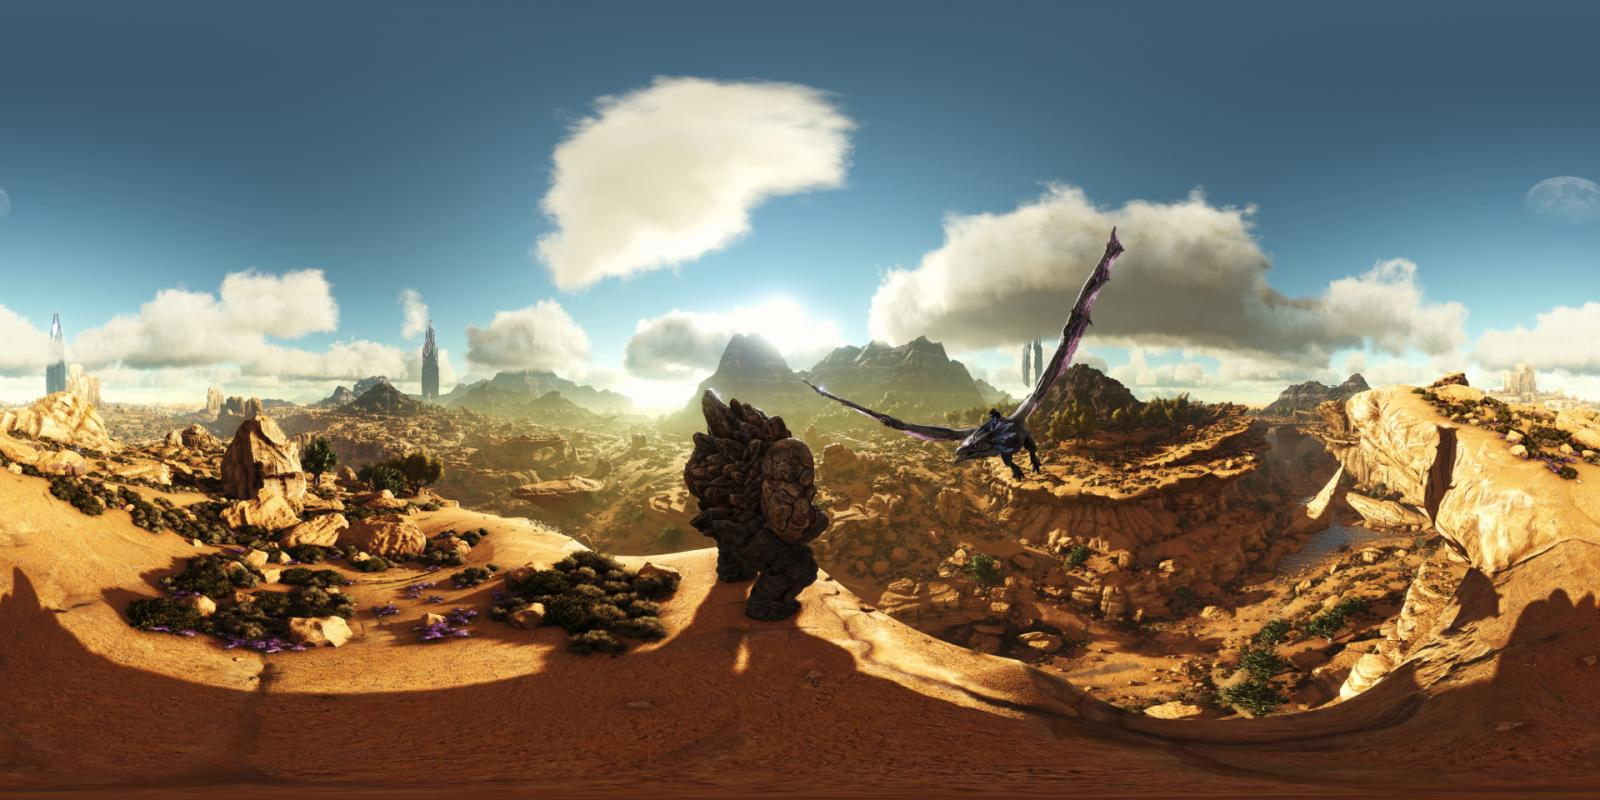 large.5a220994b4437_Vakarian-Sunsetinthedesert-Panoramic360Steroscopic3D.jpg